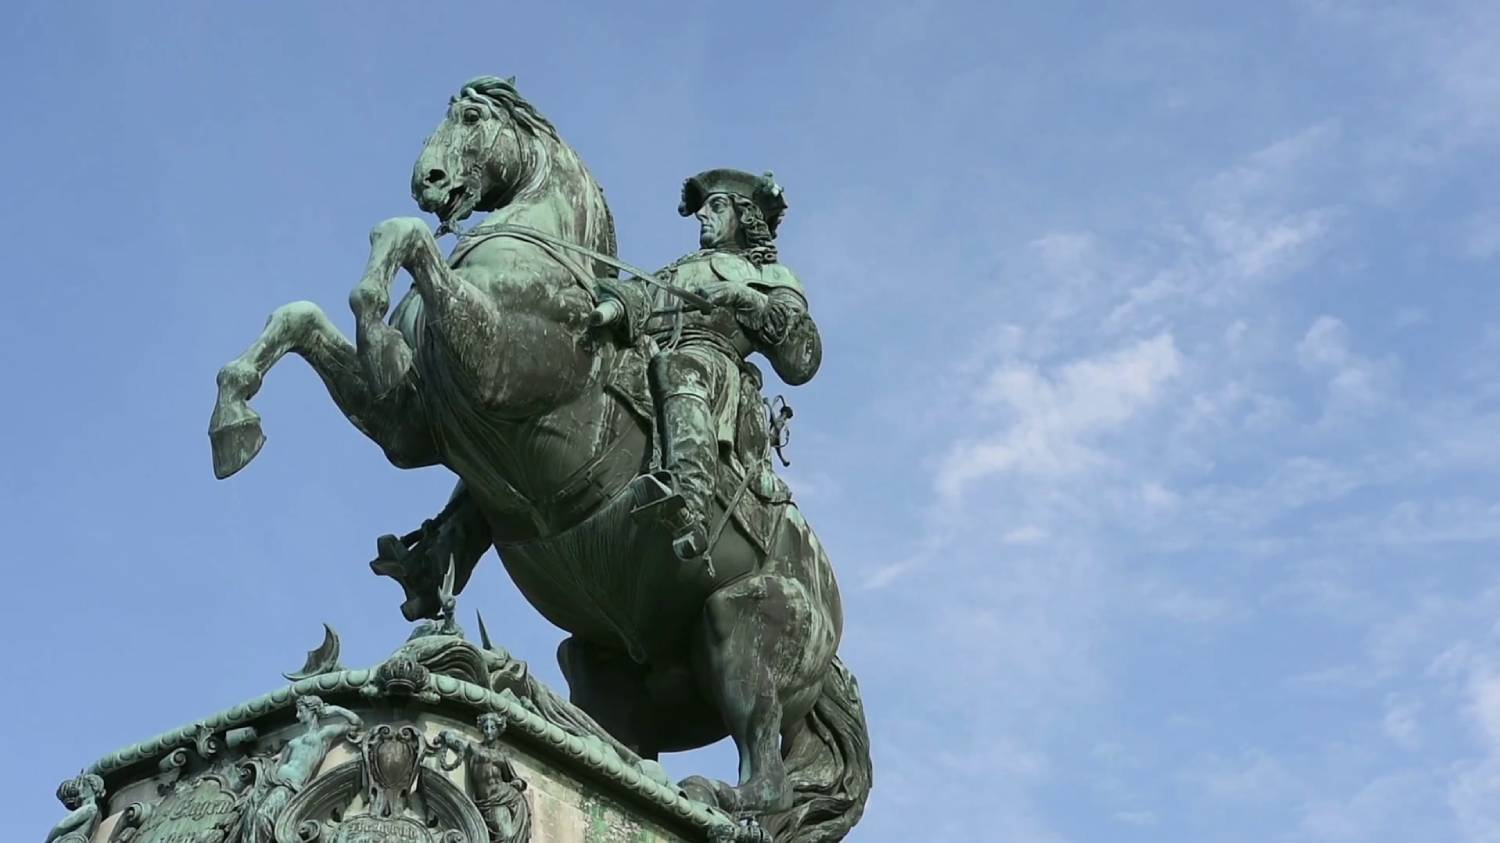 Prince Eugene Statue - Things To Do In Vienna